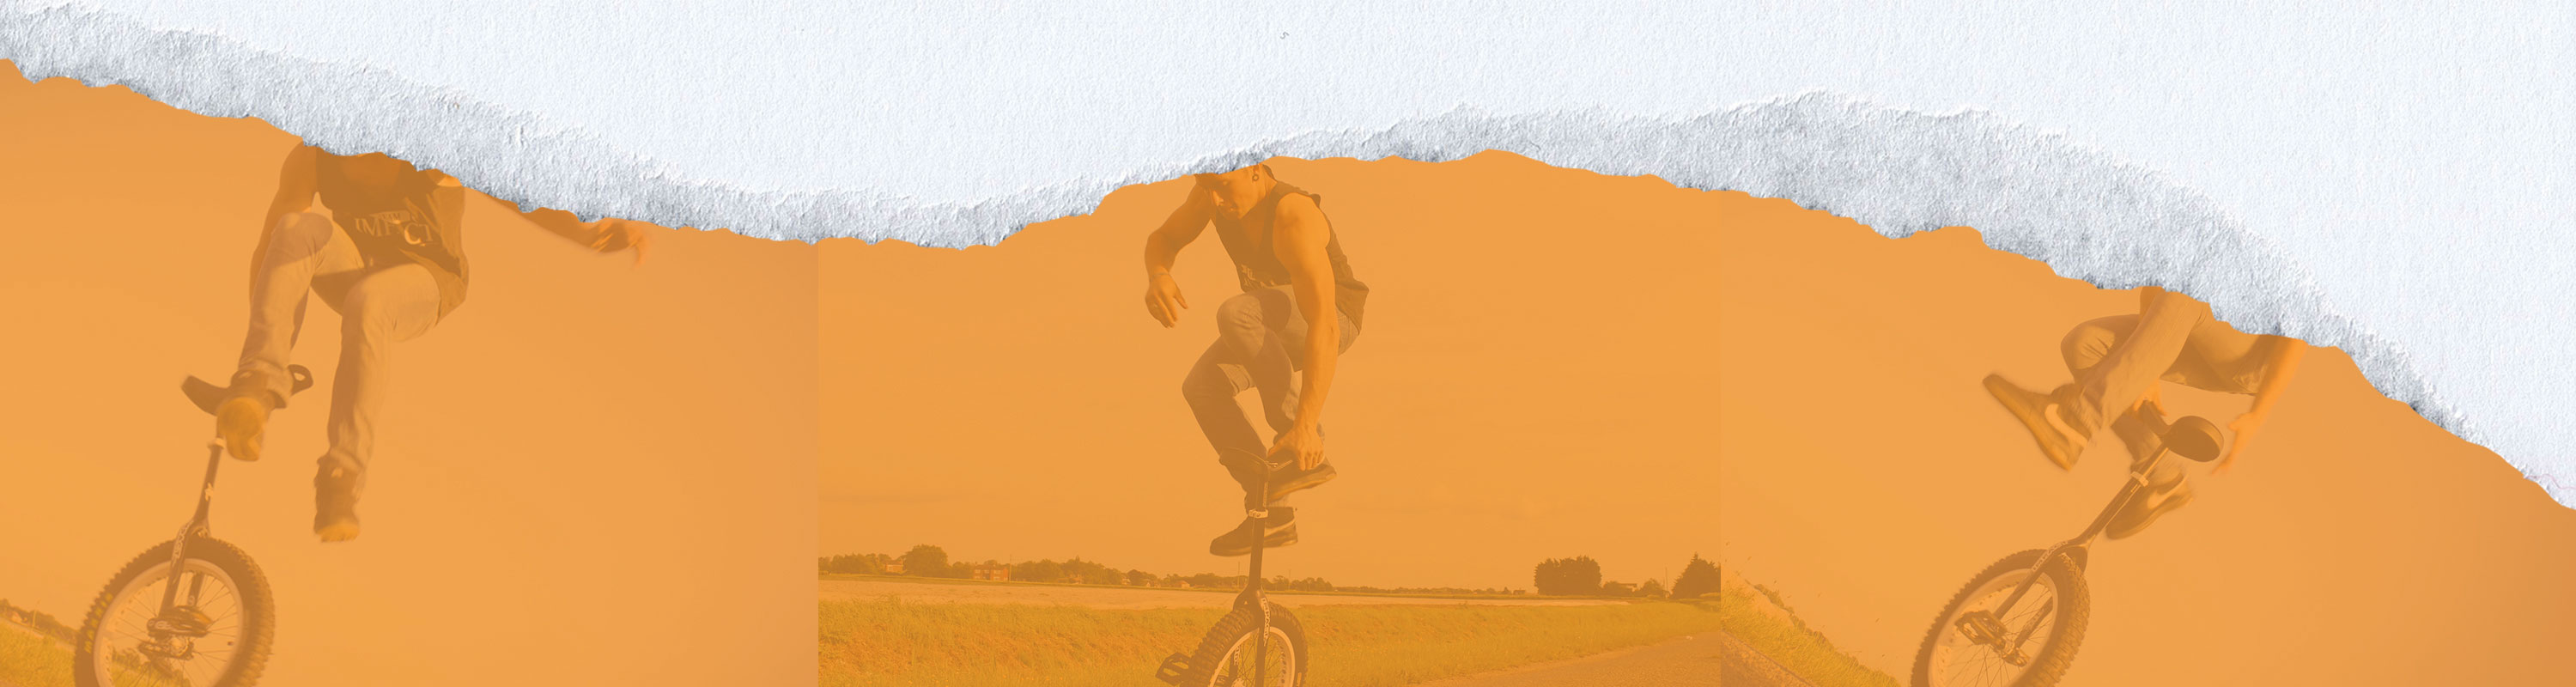 Discounted Balance & Unicycles